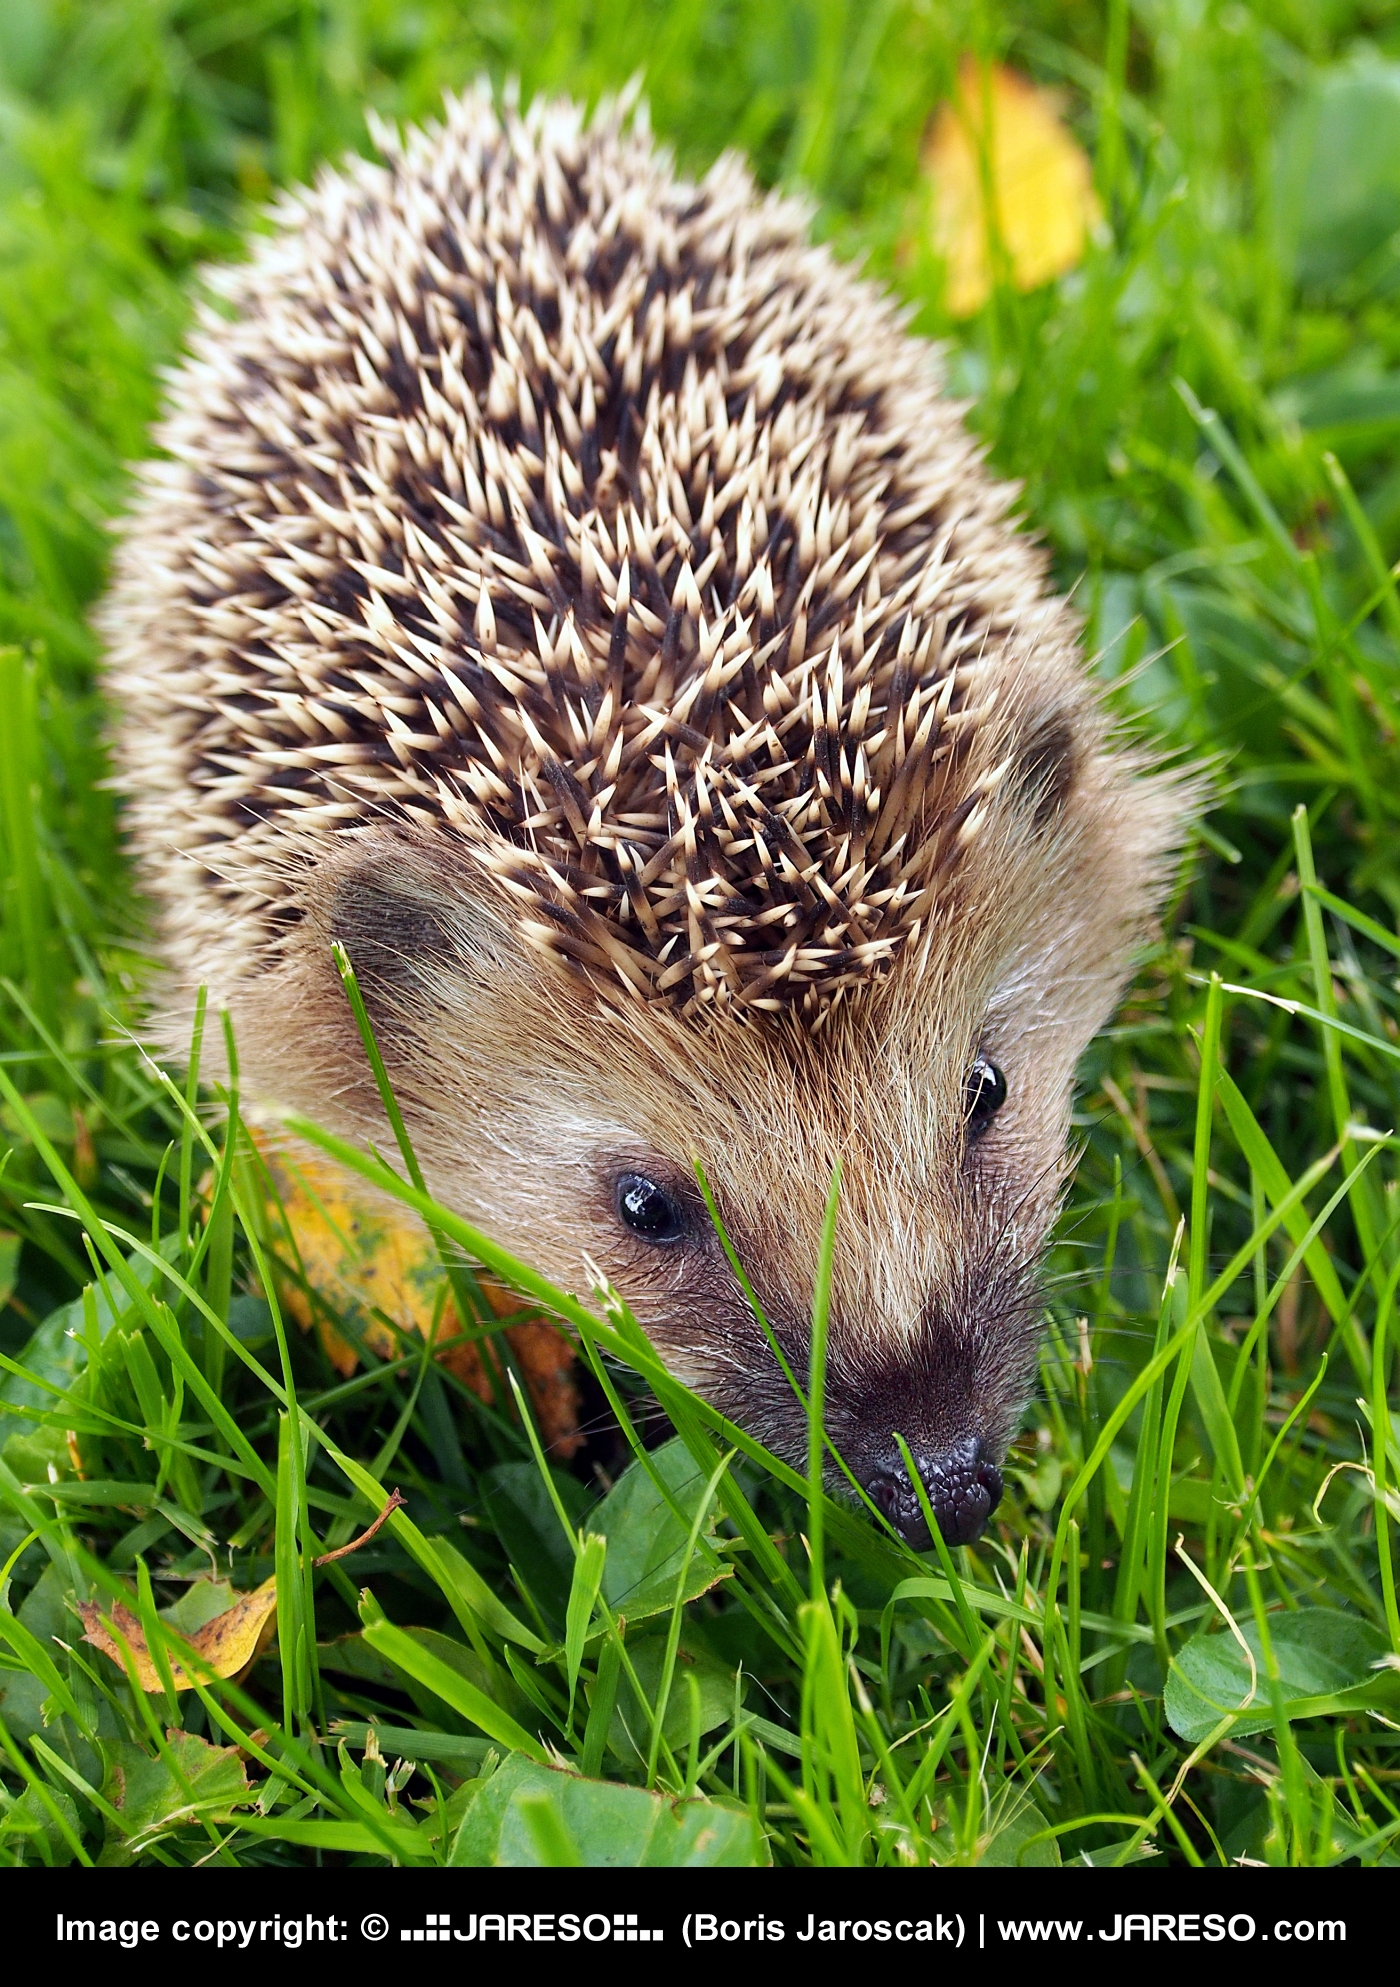 web_gplus_fb_animal_hedgehog_meadow_leafs_summer_p8300878x_3.jpg